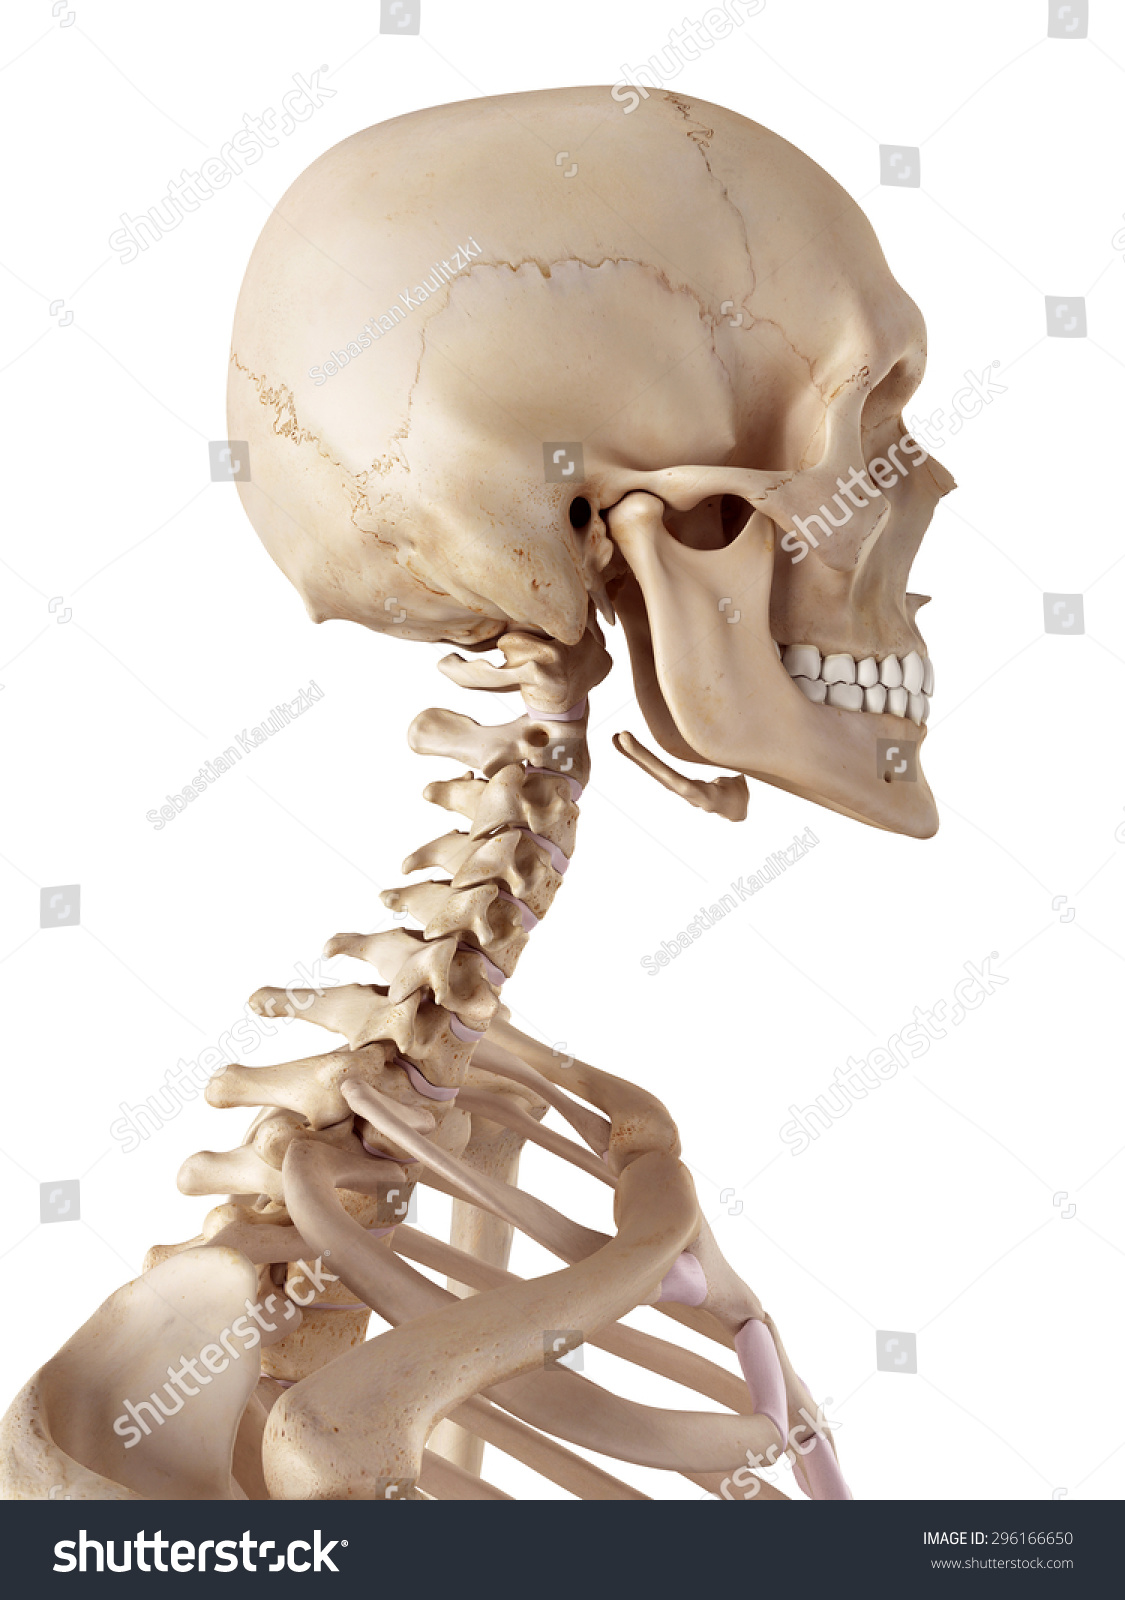 Medical Accurate Illustration Human Skull Neck Stock Illustration ...